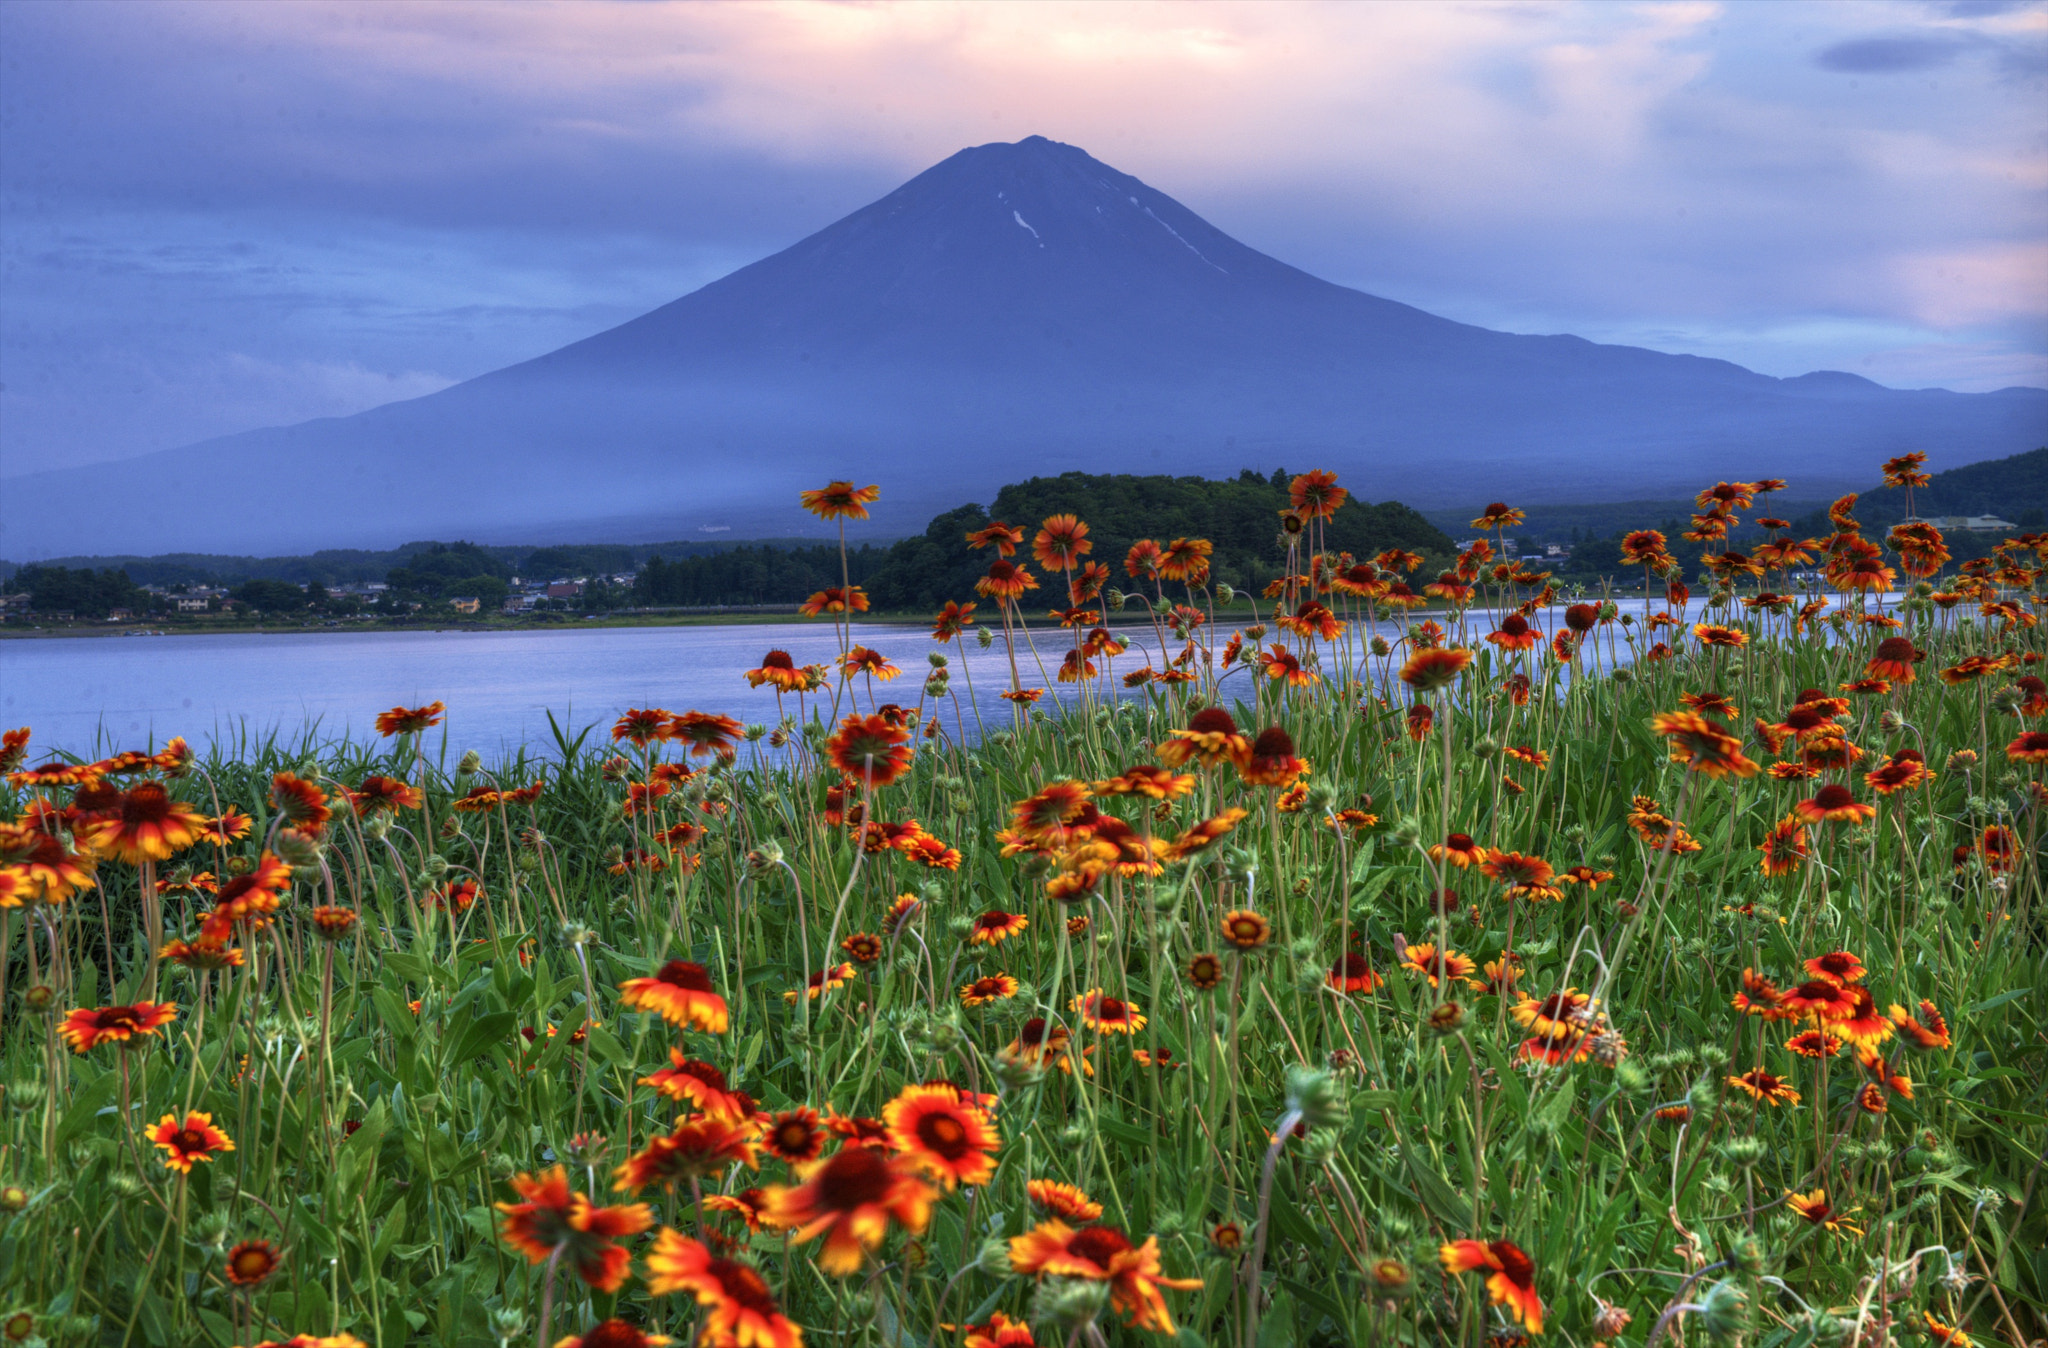 Photograph Mt Fuji Flowers by hugh dornan on 500px